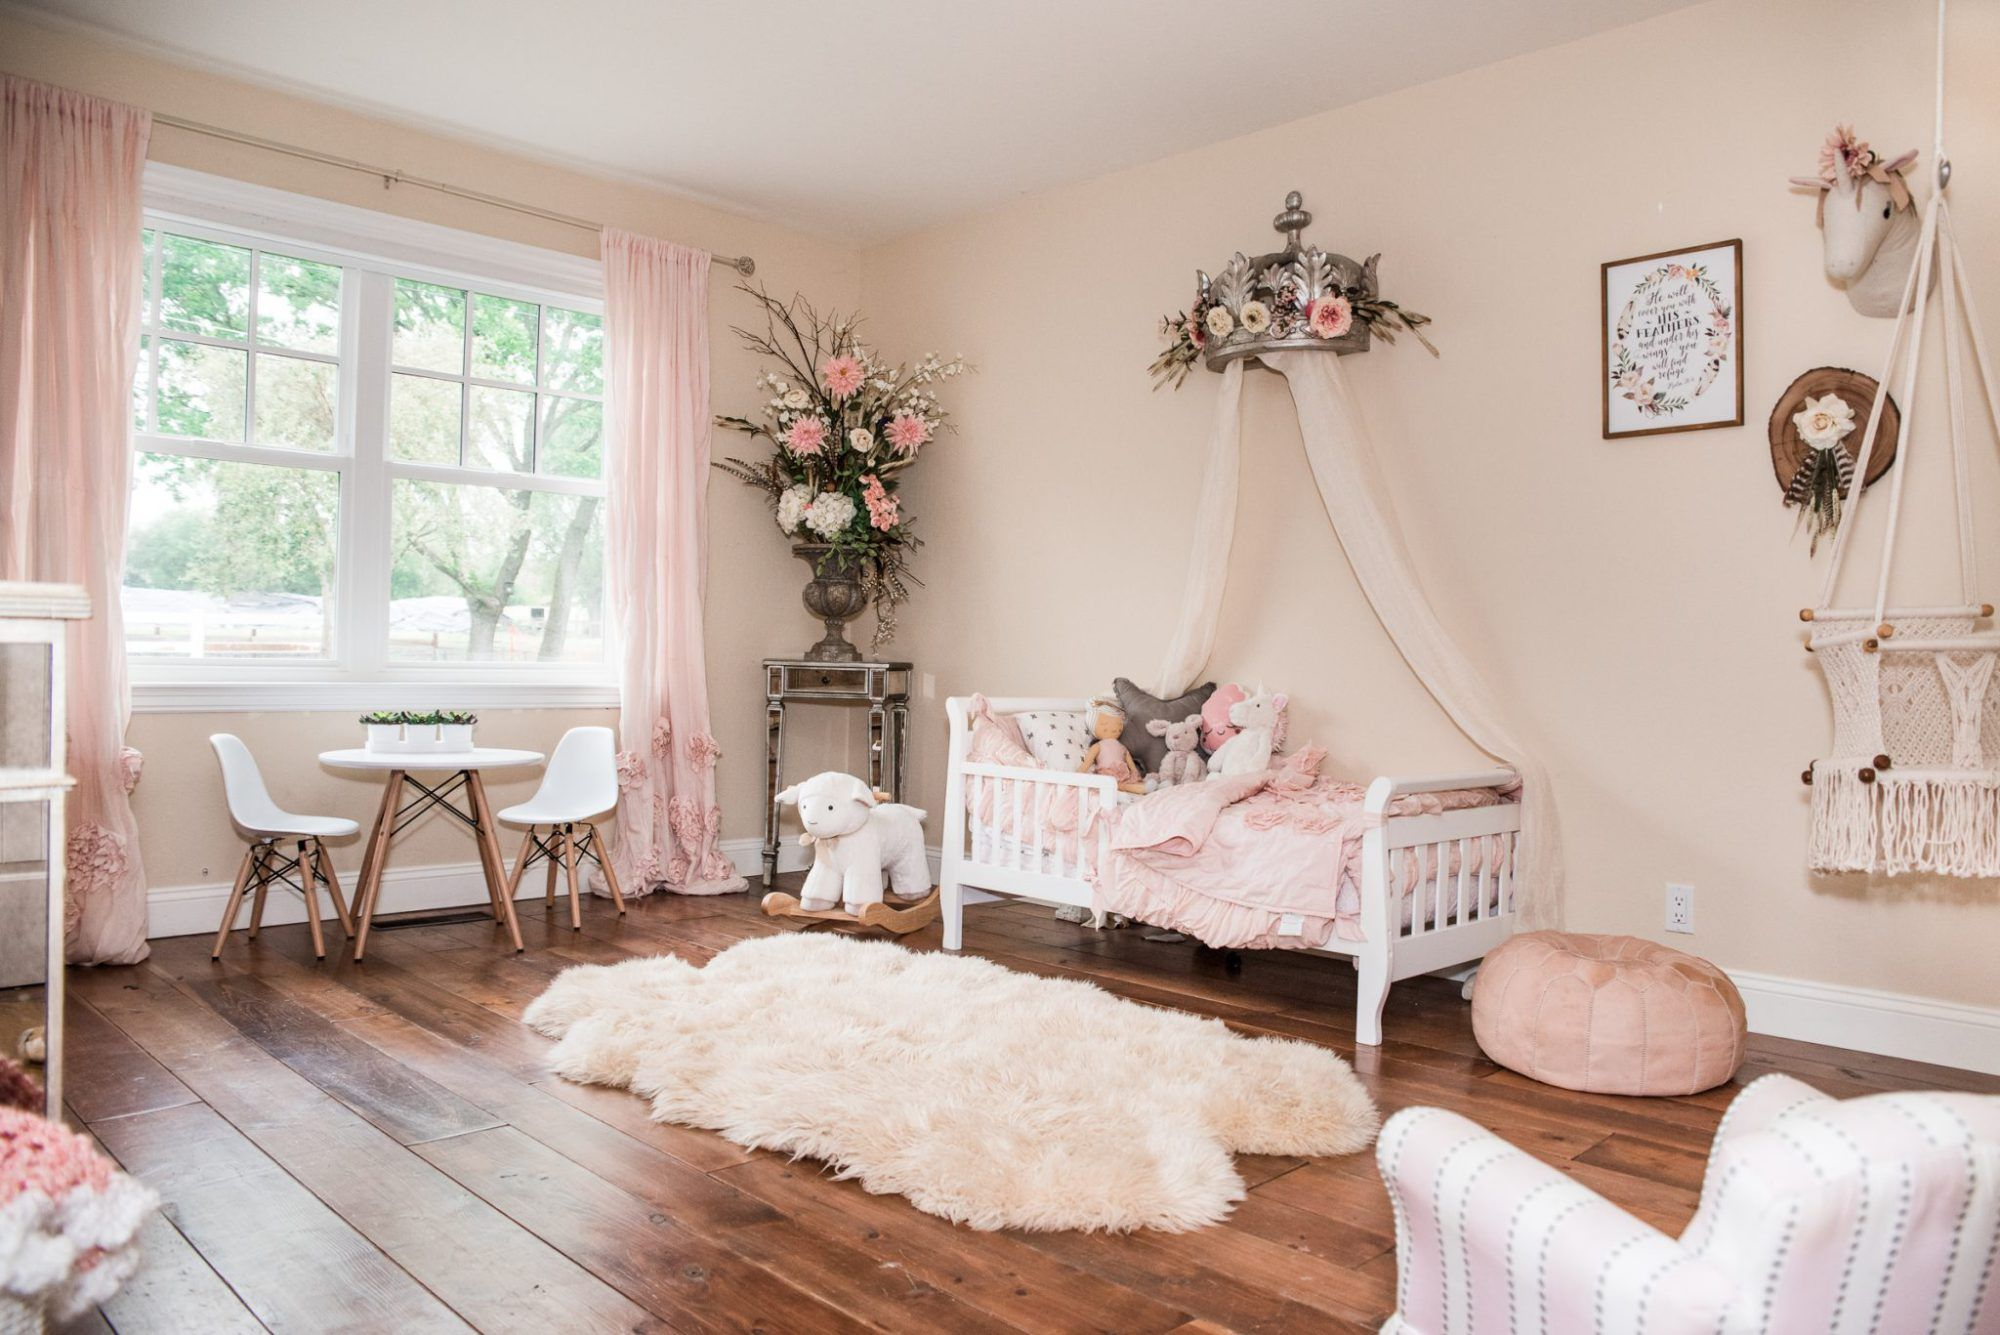 Savy's Boho Princess Room